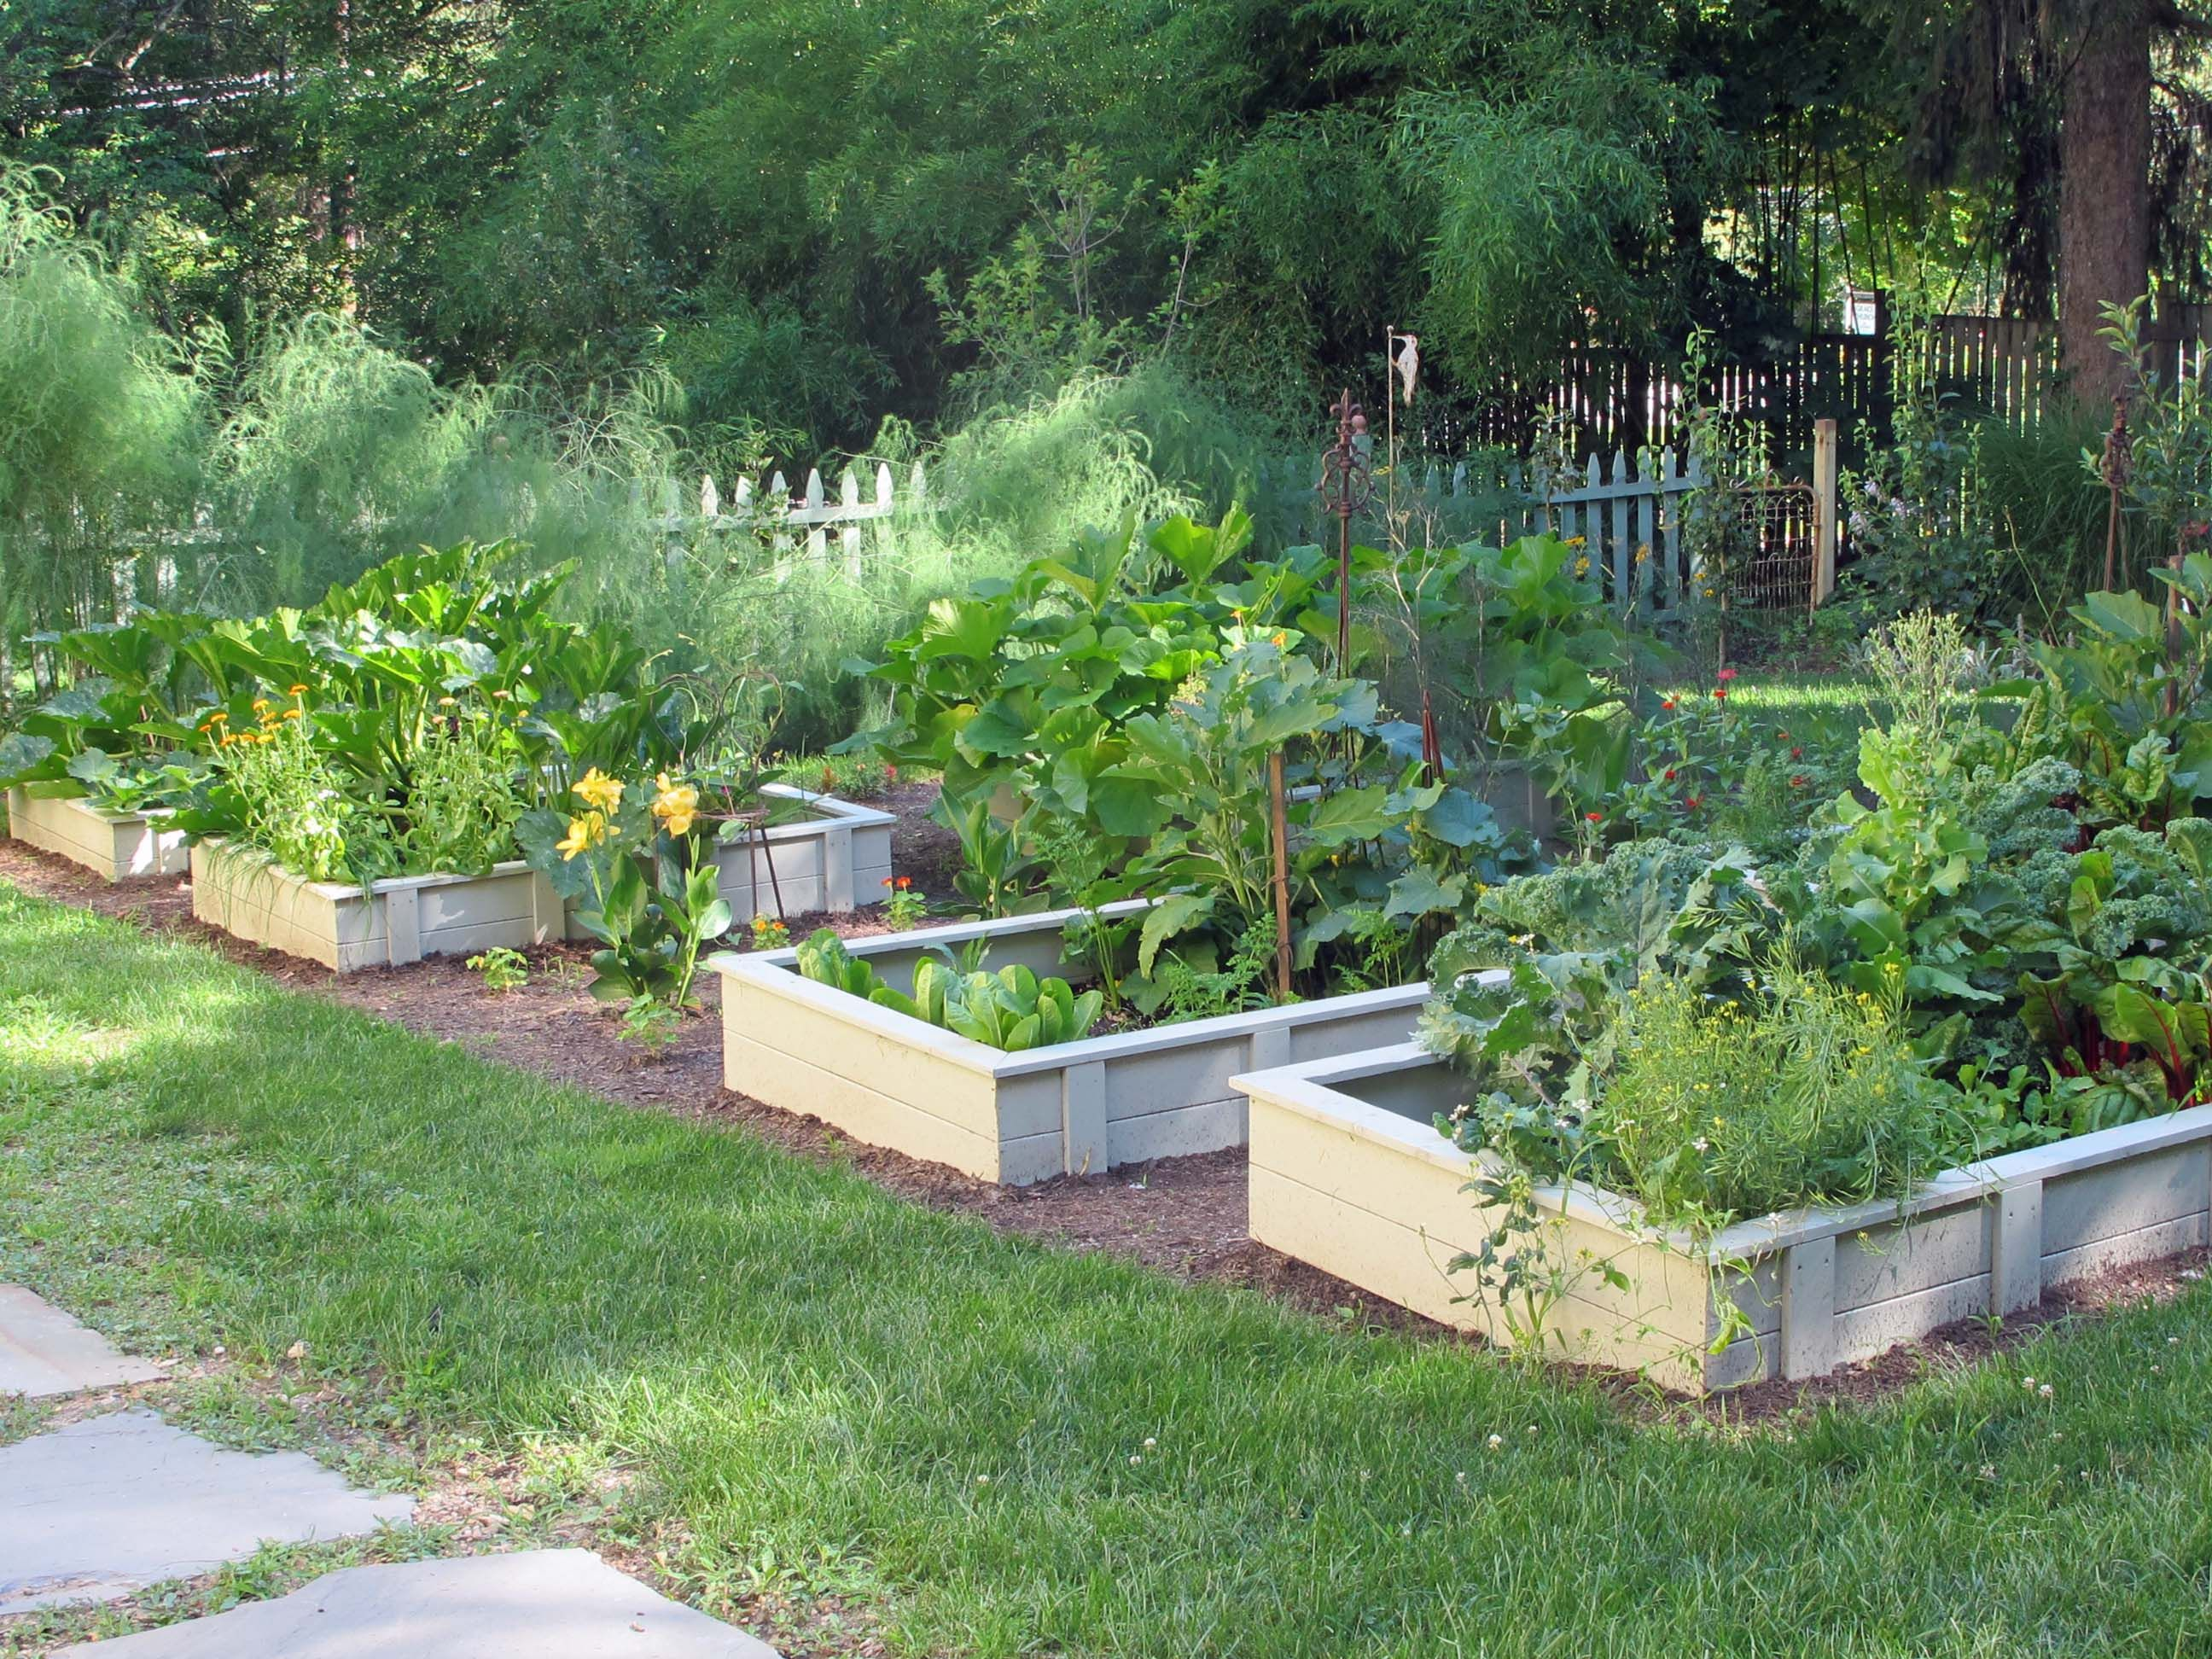 Raised vegetable garden design ideas veg garden beds for Backyard vegetable garden designs